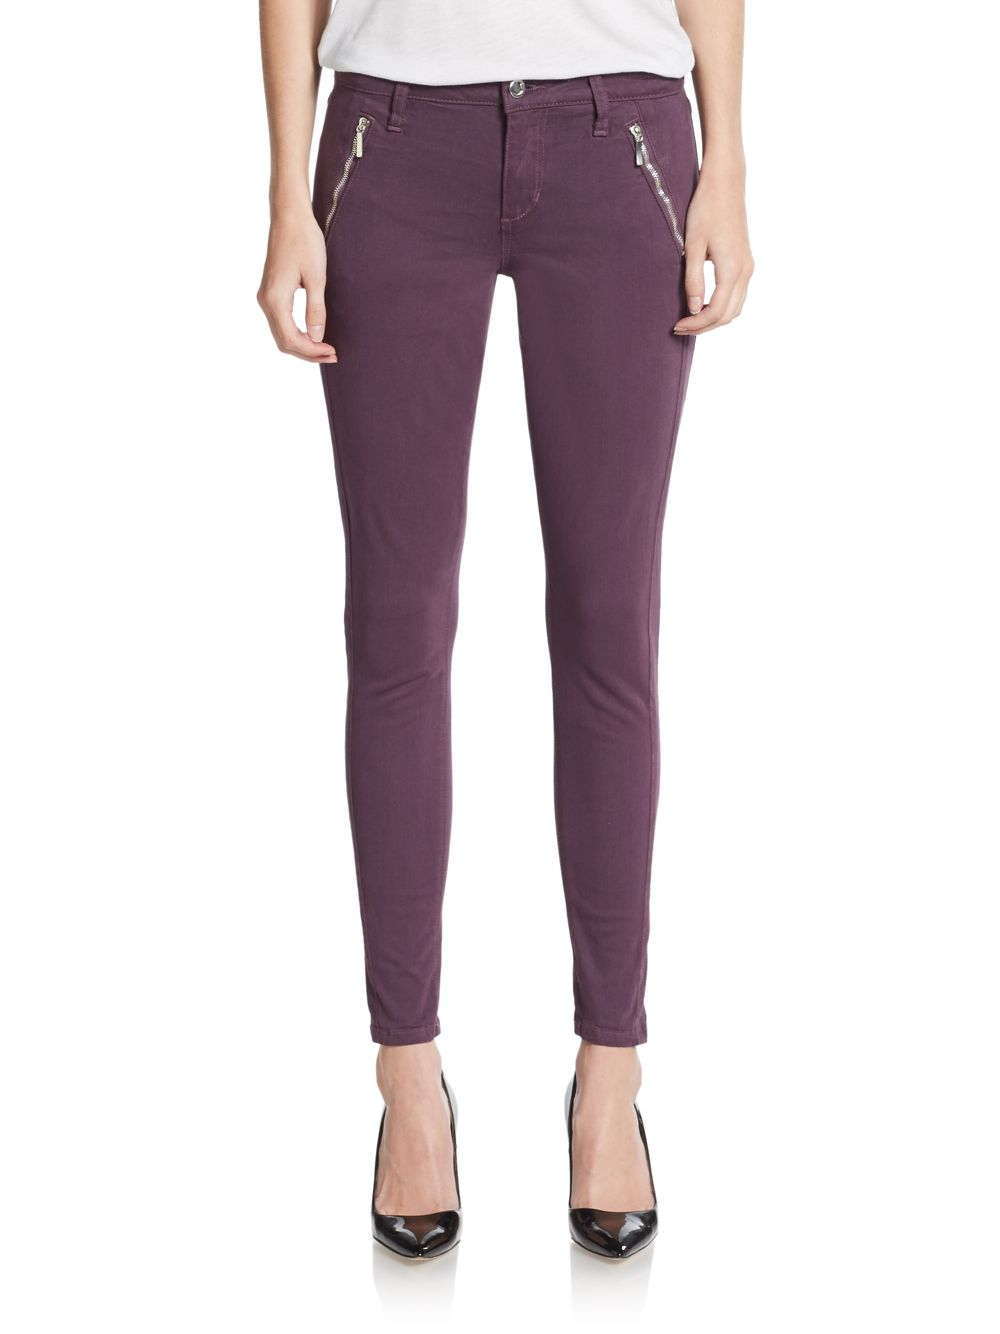 Purple Skinny Jeans For Women